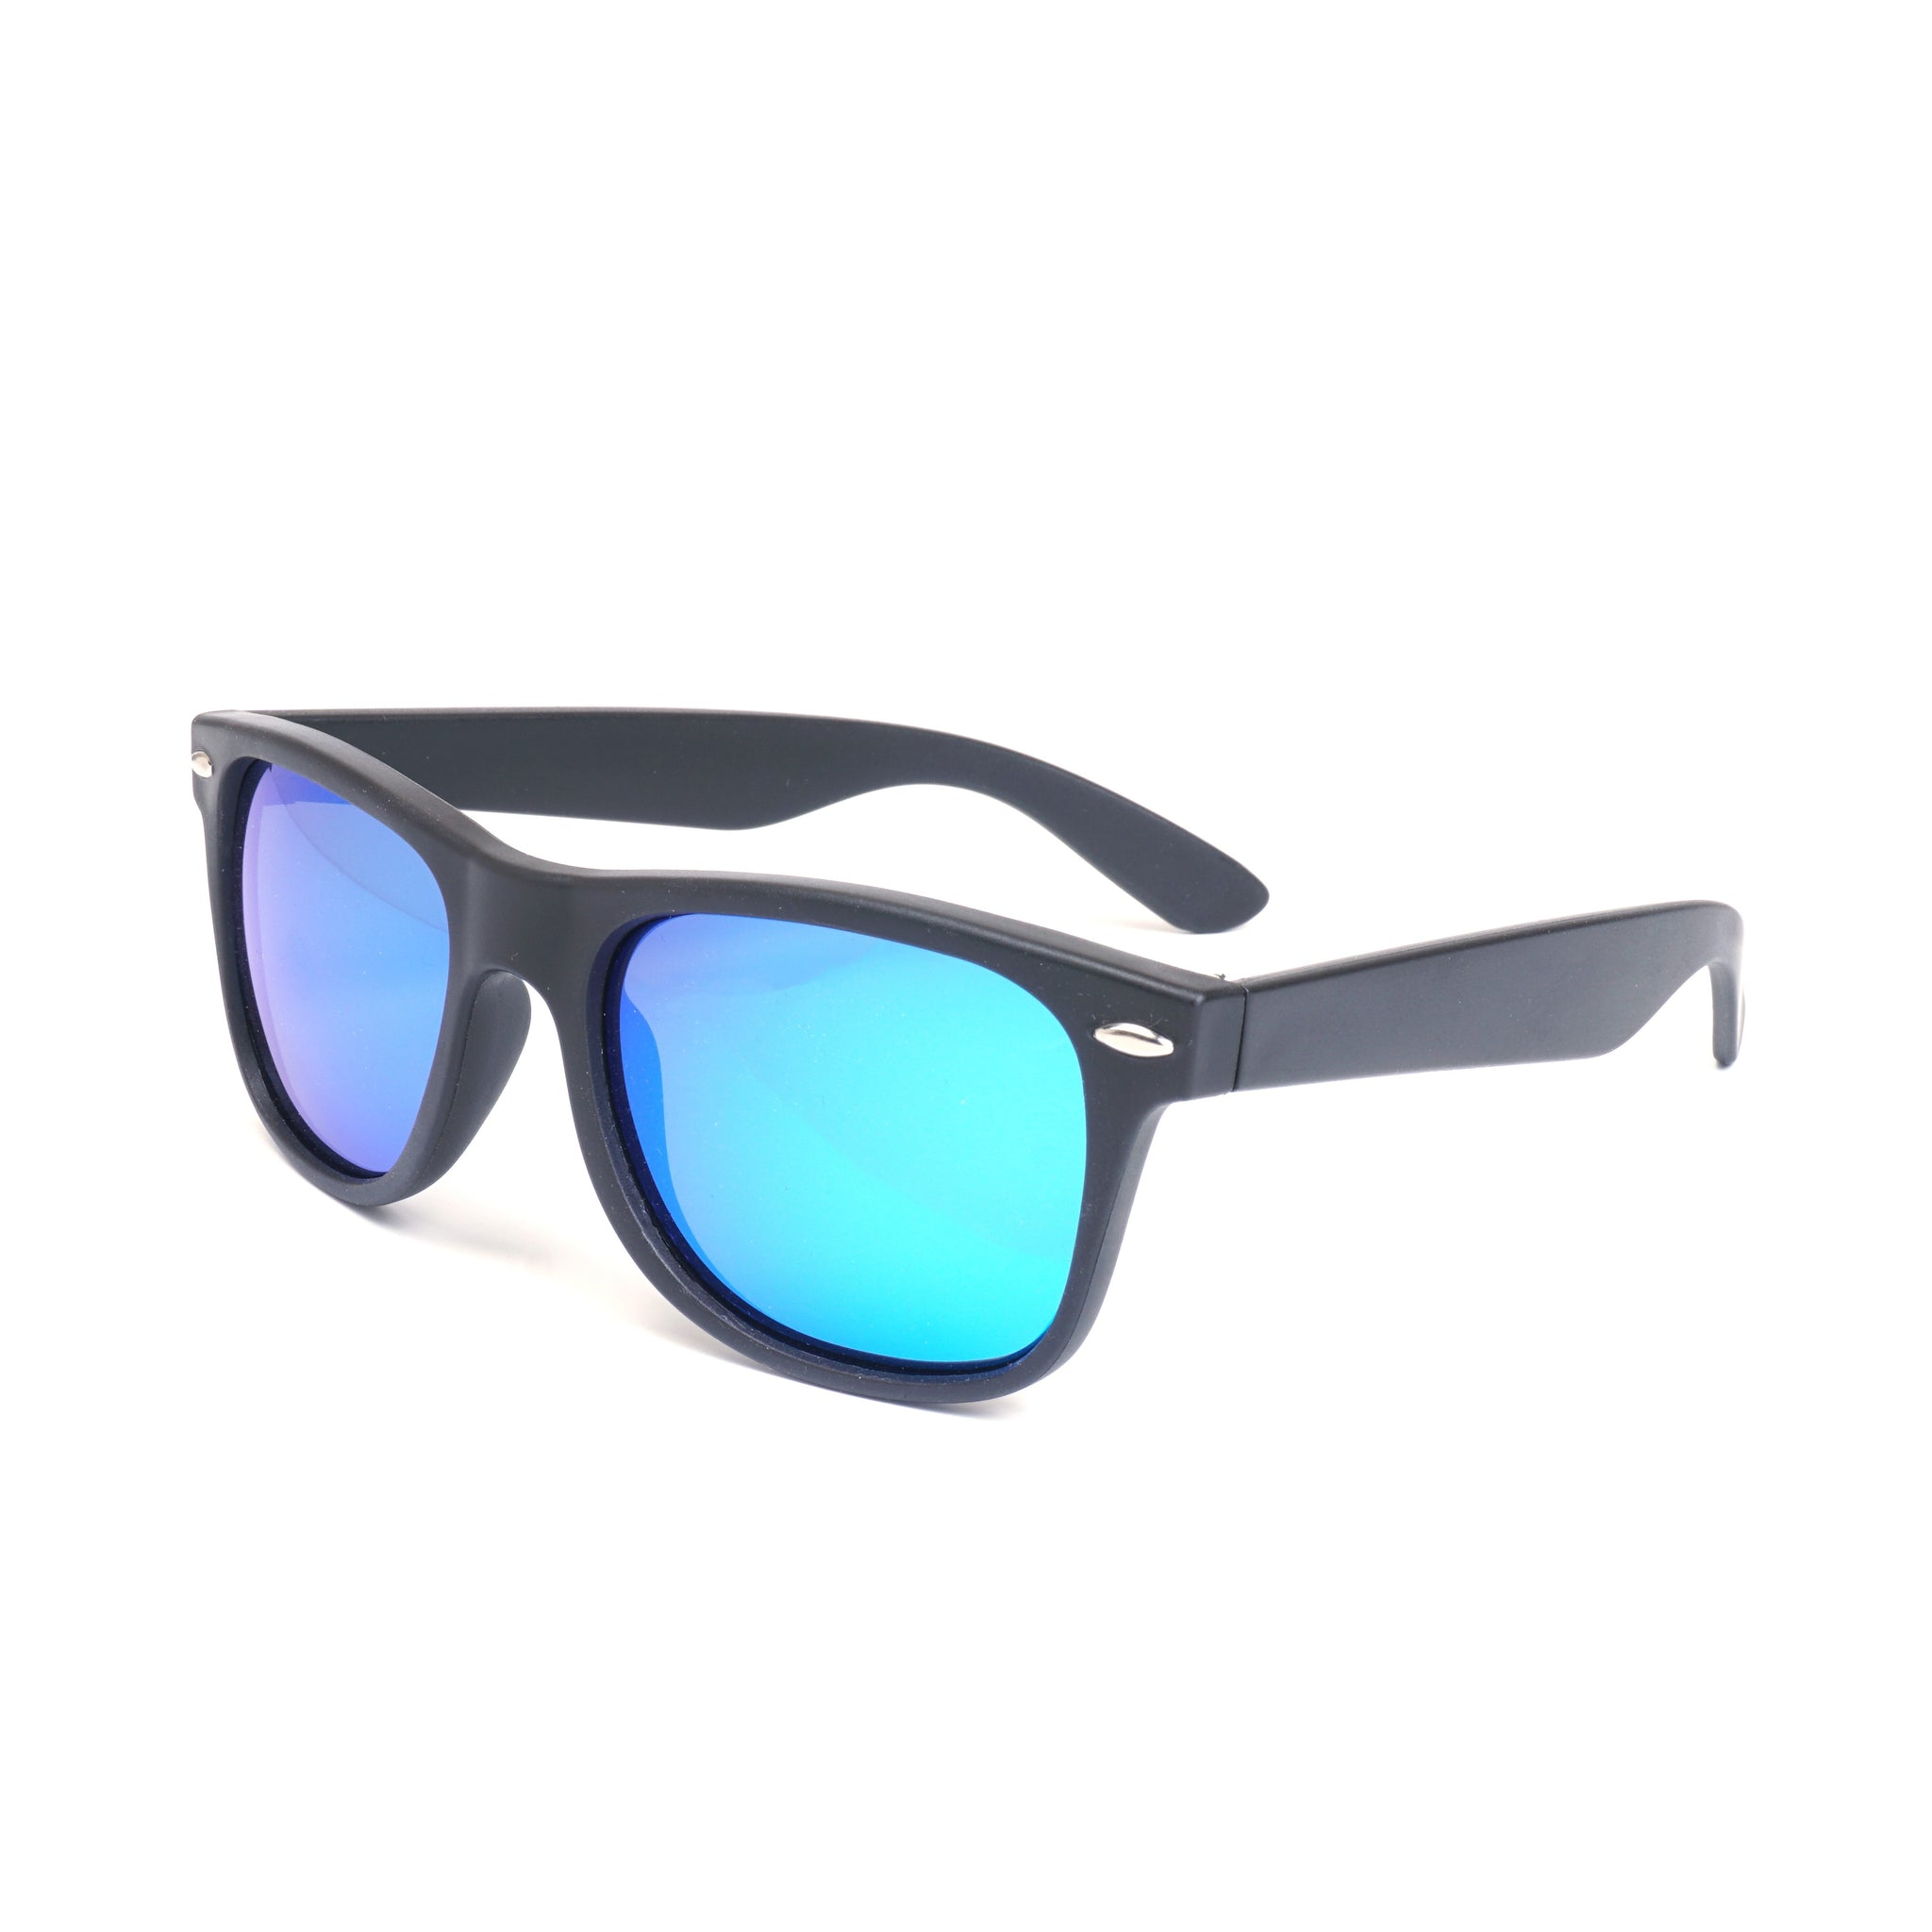 STAGE Rebel Floating Sunglasses